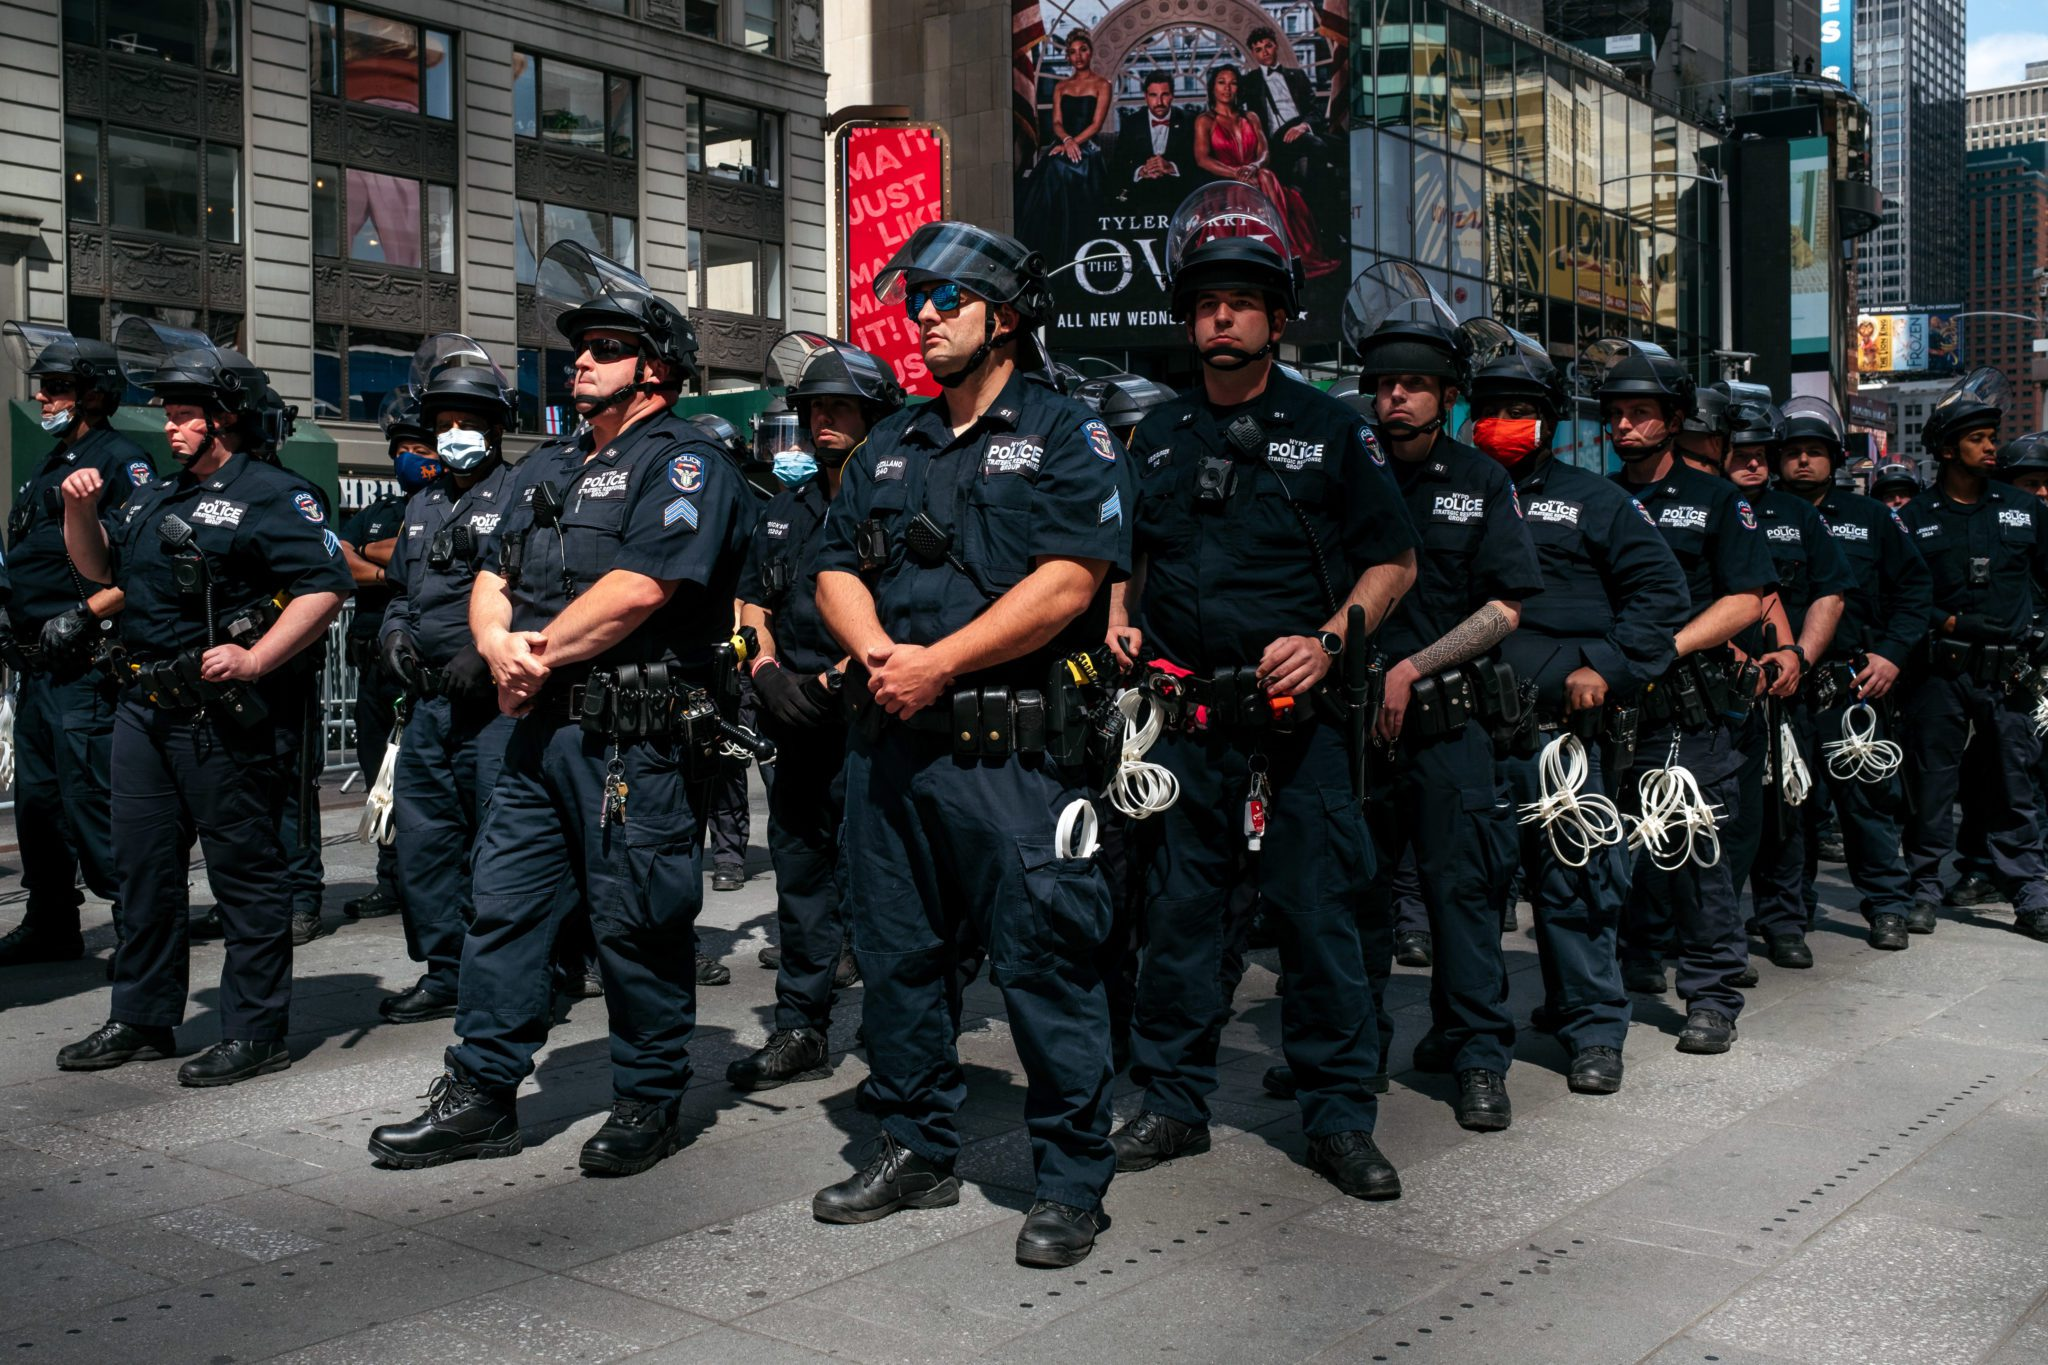 NEW YORK, NY - JUNE 01: NYPD officers stand in formation as nearby demonstrators hold a rally in Times Square denouncing racism in law enforcement and the May 25 killing of George Floyd while in the custody of Minneapolis, on June 1, 2020 in New York City. Days of protest, sometimes violent, have followed in many cities across the country. (Photo by Scott Heins/Getty Images)